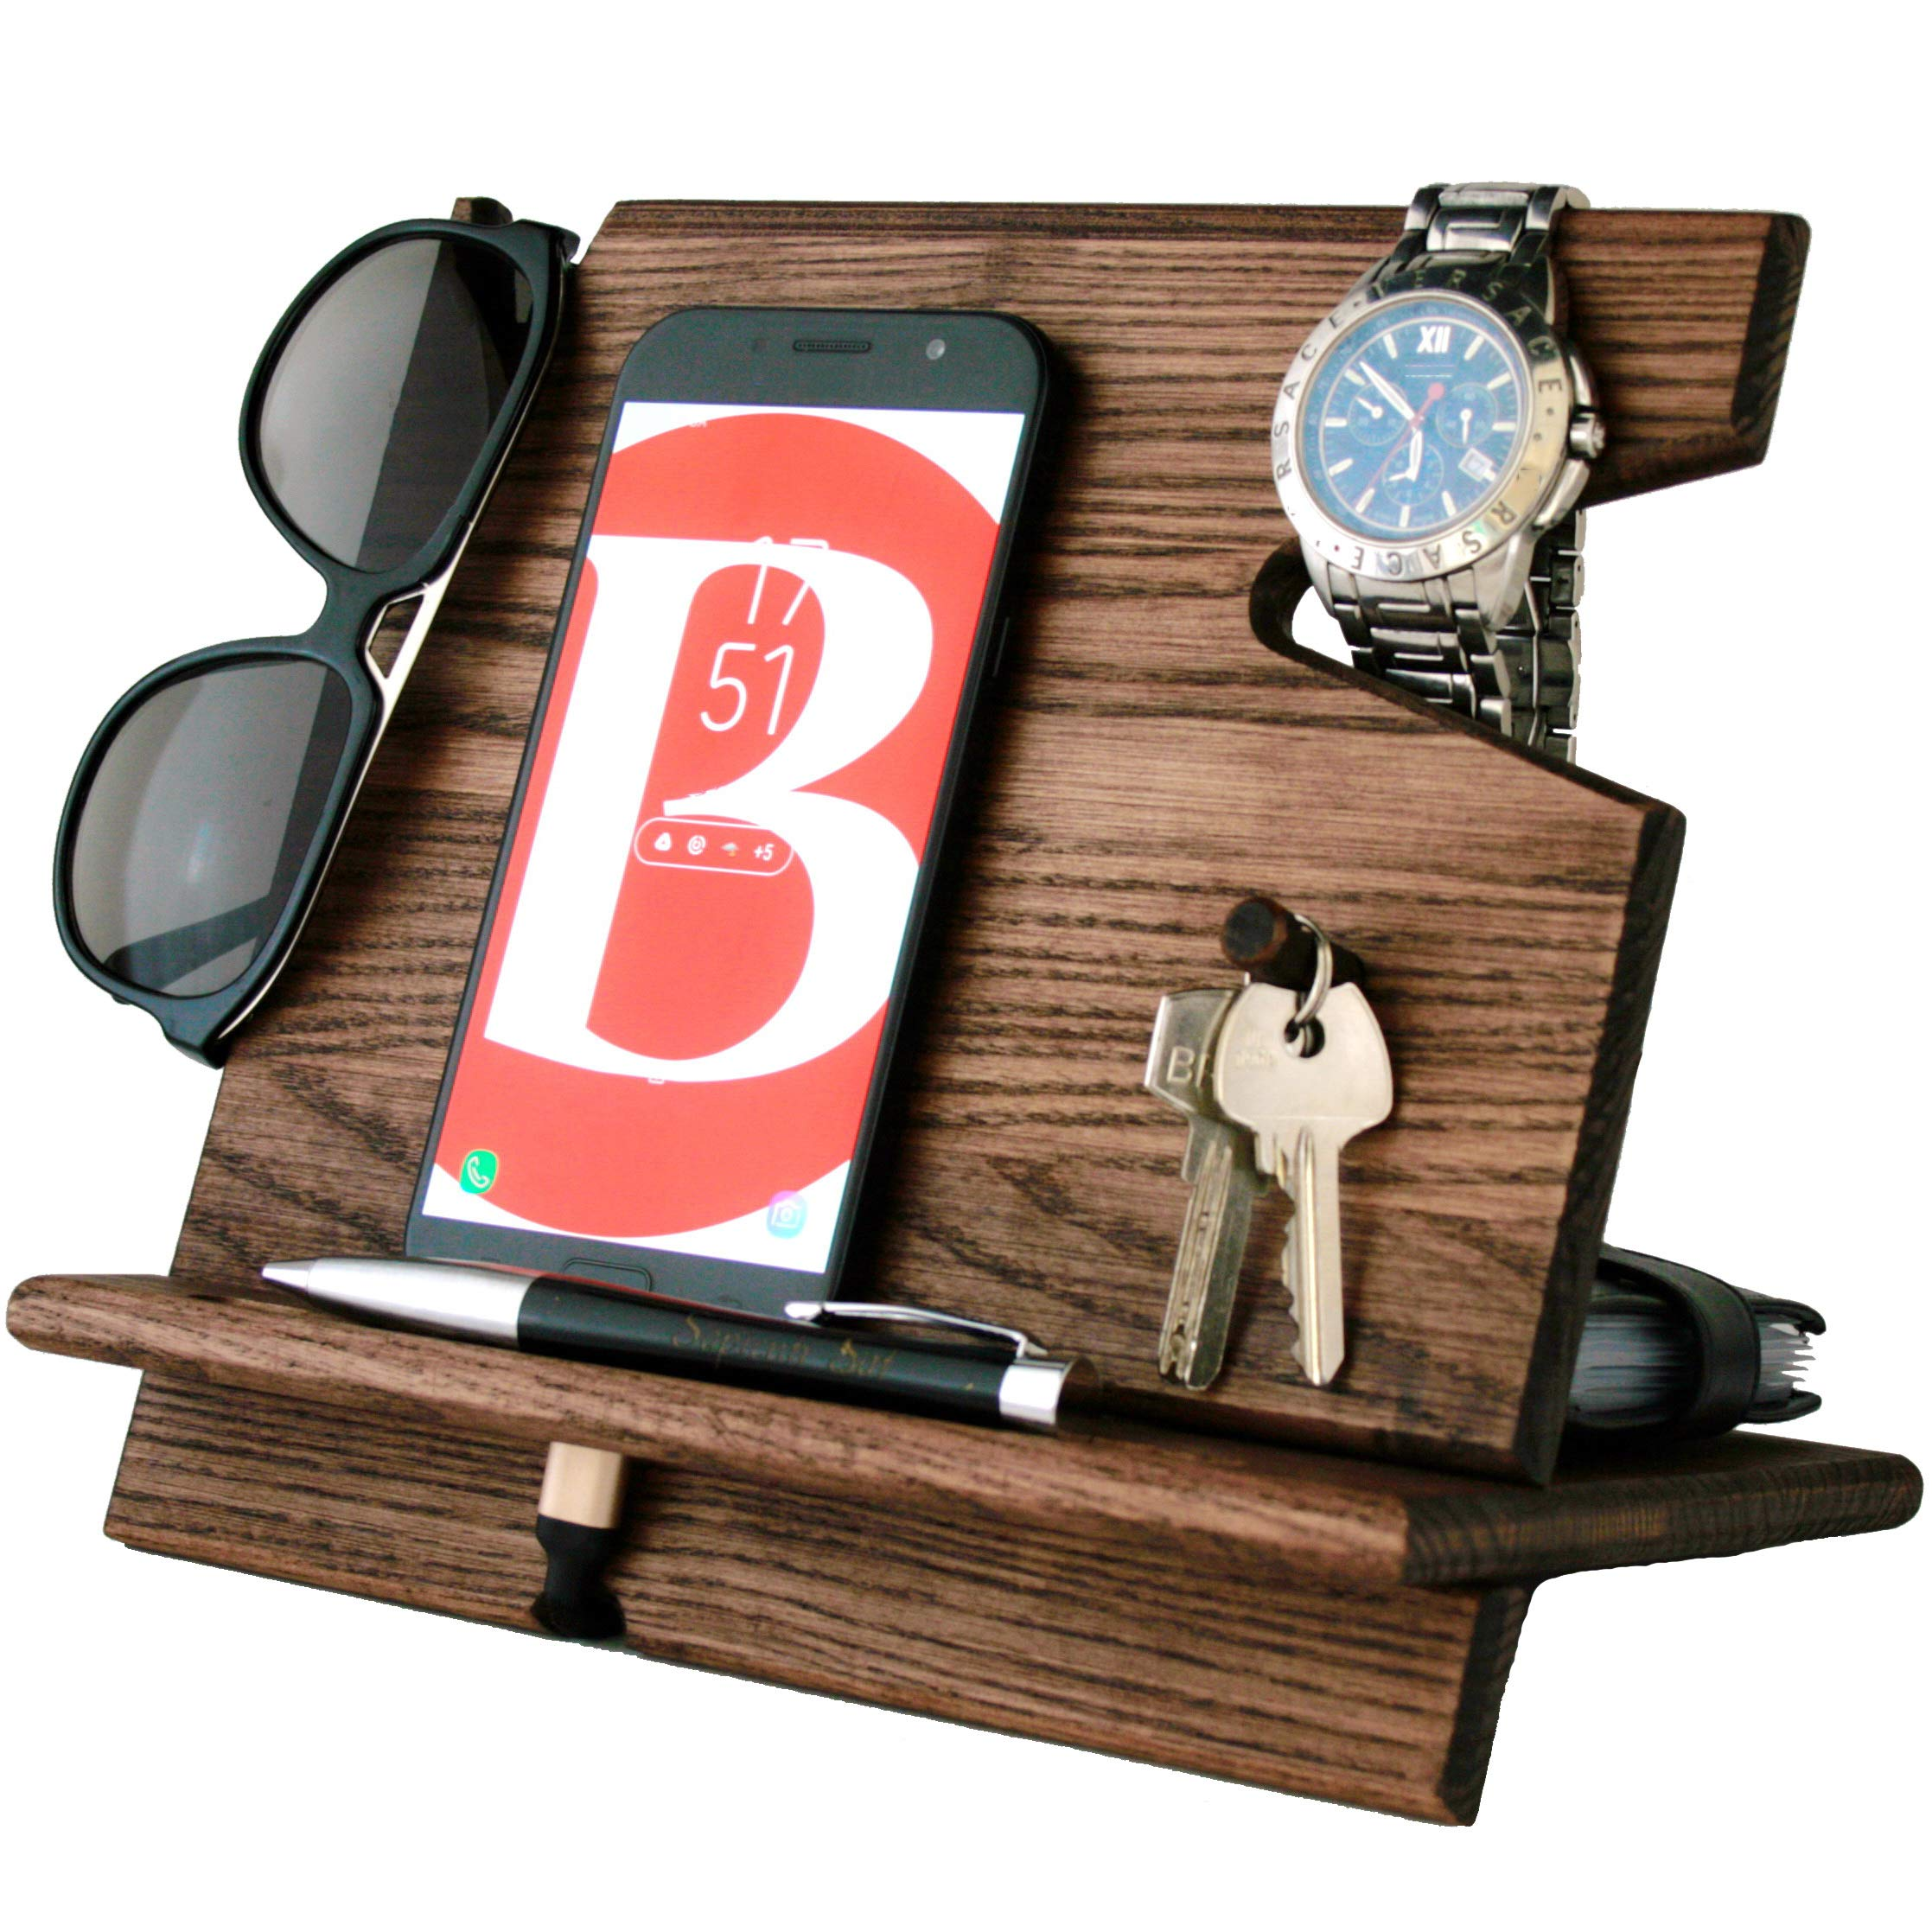 Wooden Cell Phone Stand. Nightstand Charging Dock Plus Watches Holder. Mens Wood Bed Side Valet Tray Organizer. Desk Top Docking Station Smart Mobile Base. Cute Universal Dresser Caddy Device Storage